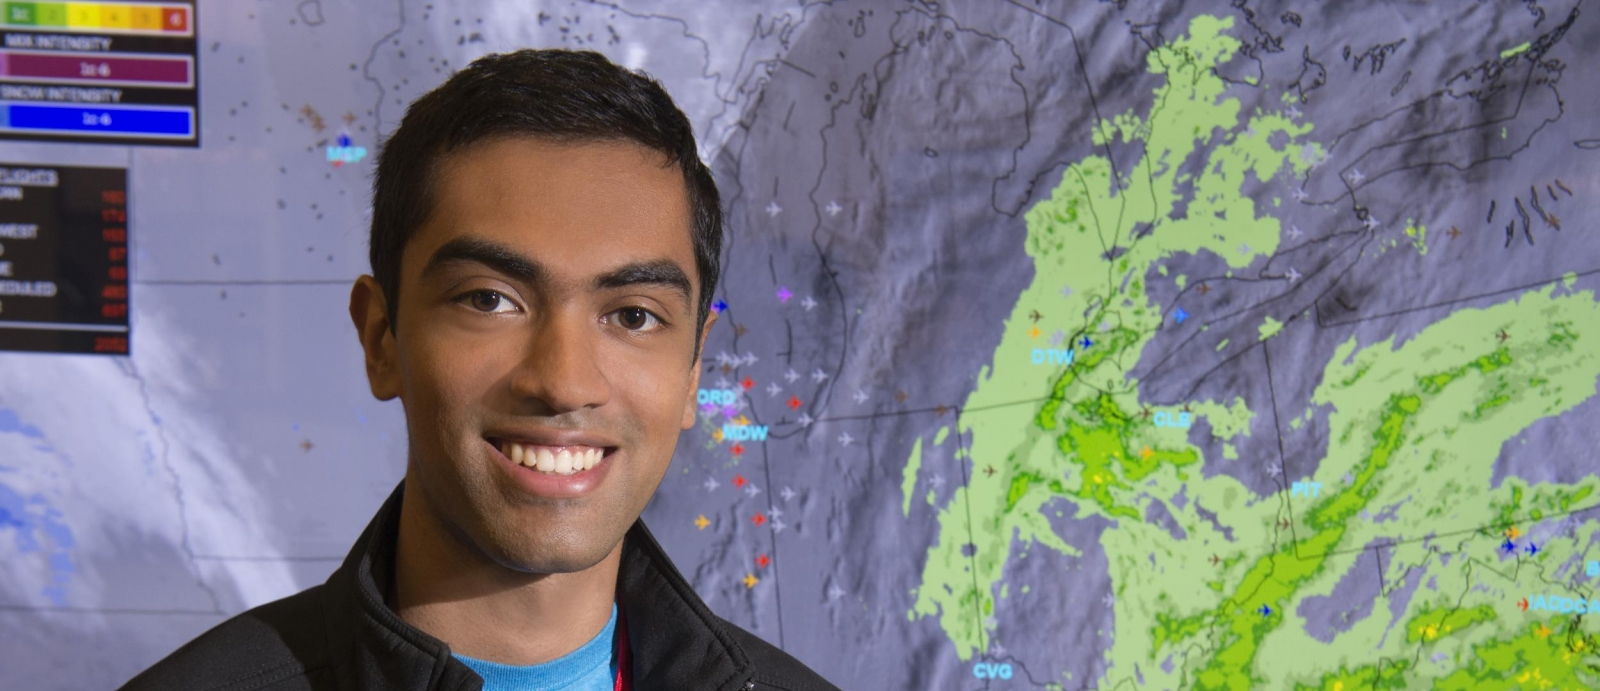 MIT student Vivek Miglani worked on a project that simulates weather radar images for air traffic controllers, modifying the team's existing neural network model and running experiments to identify possible improvements.